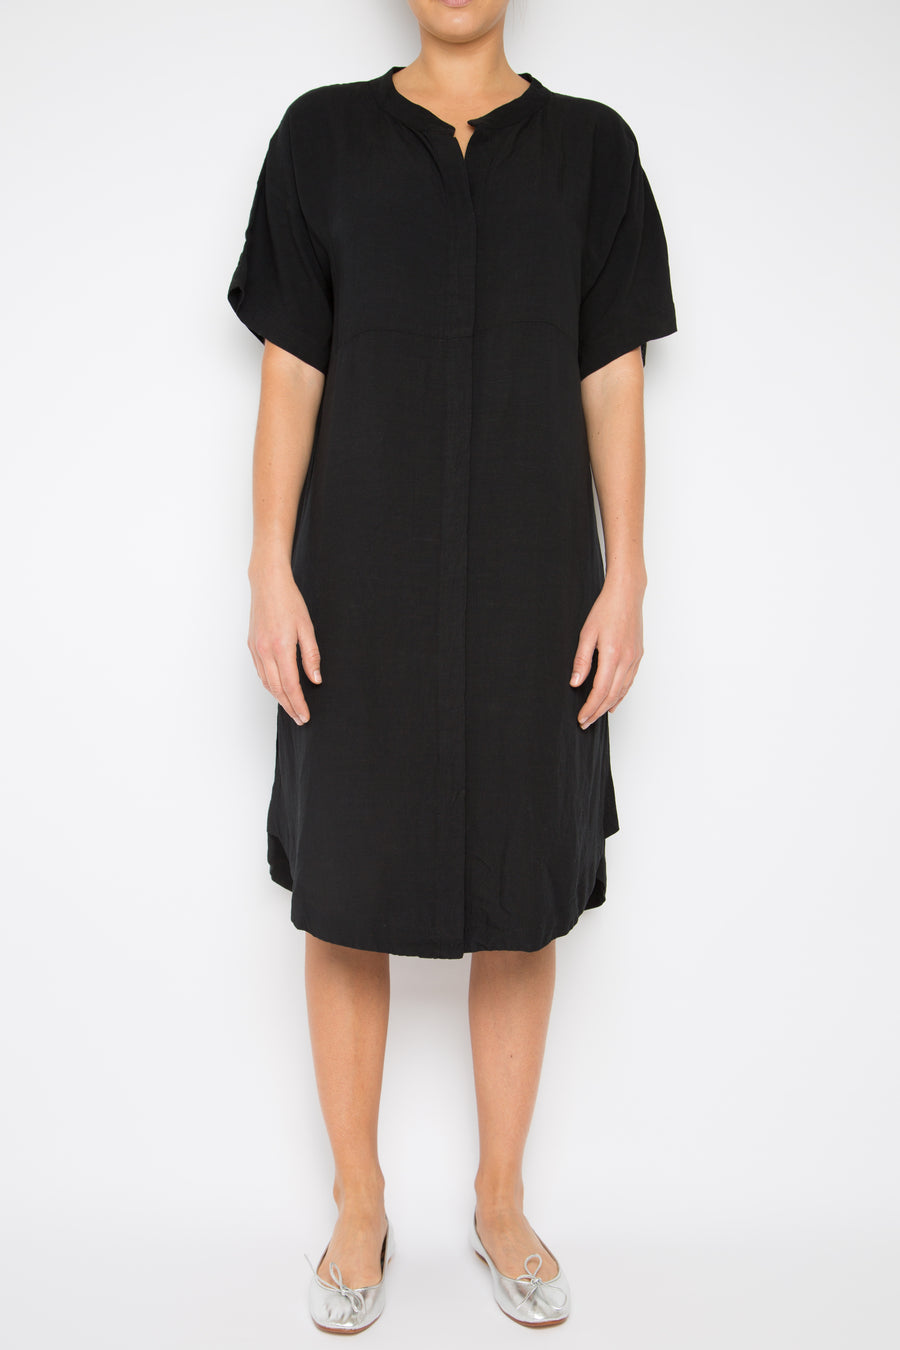 Sihu Dress in Black